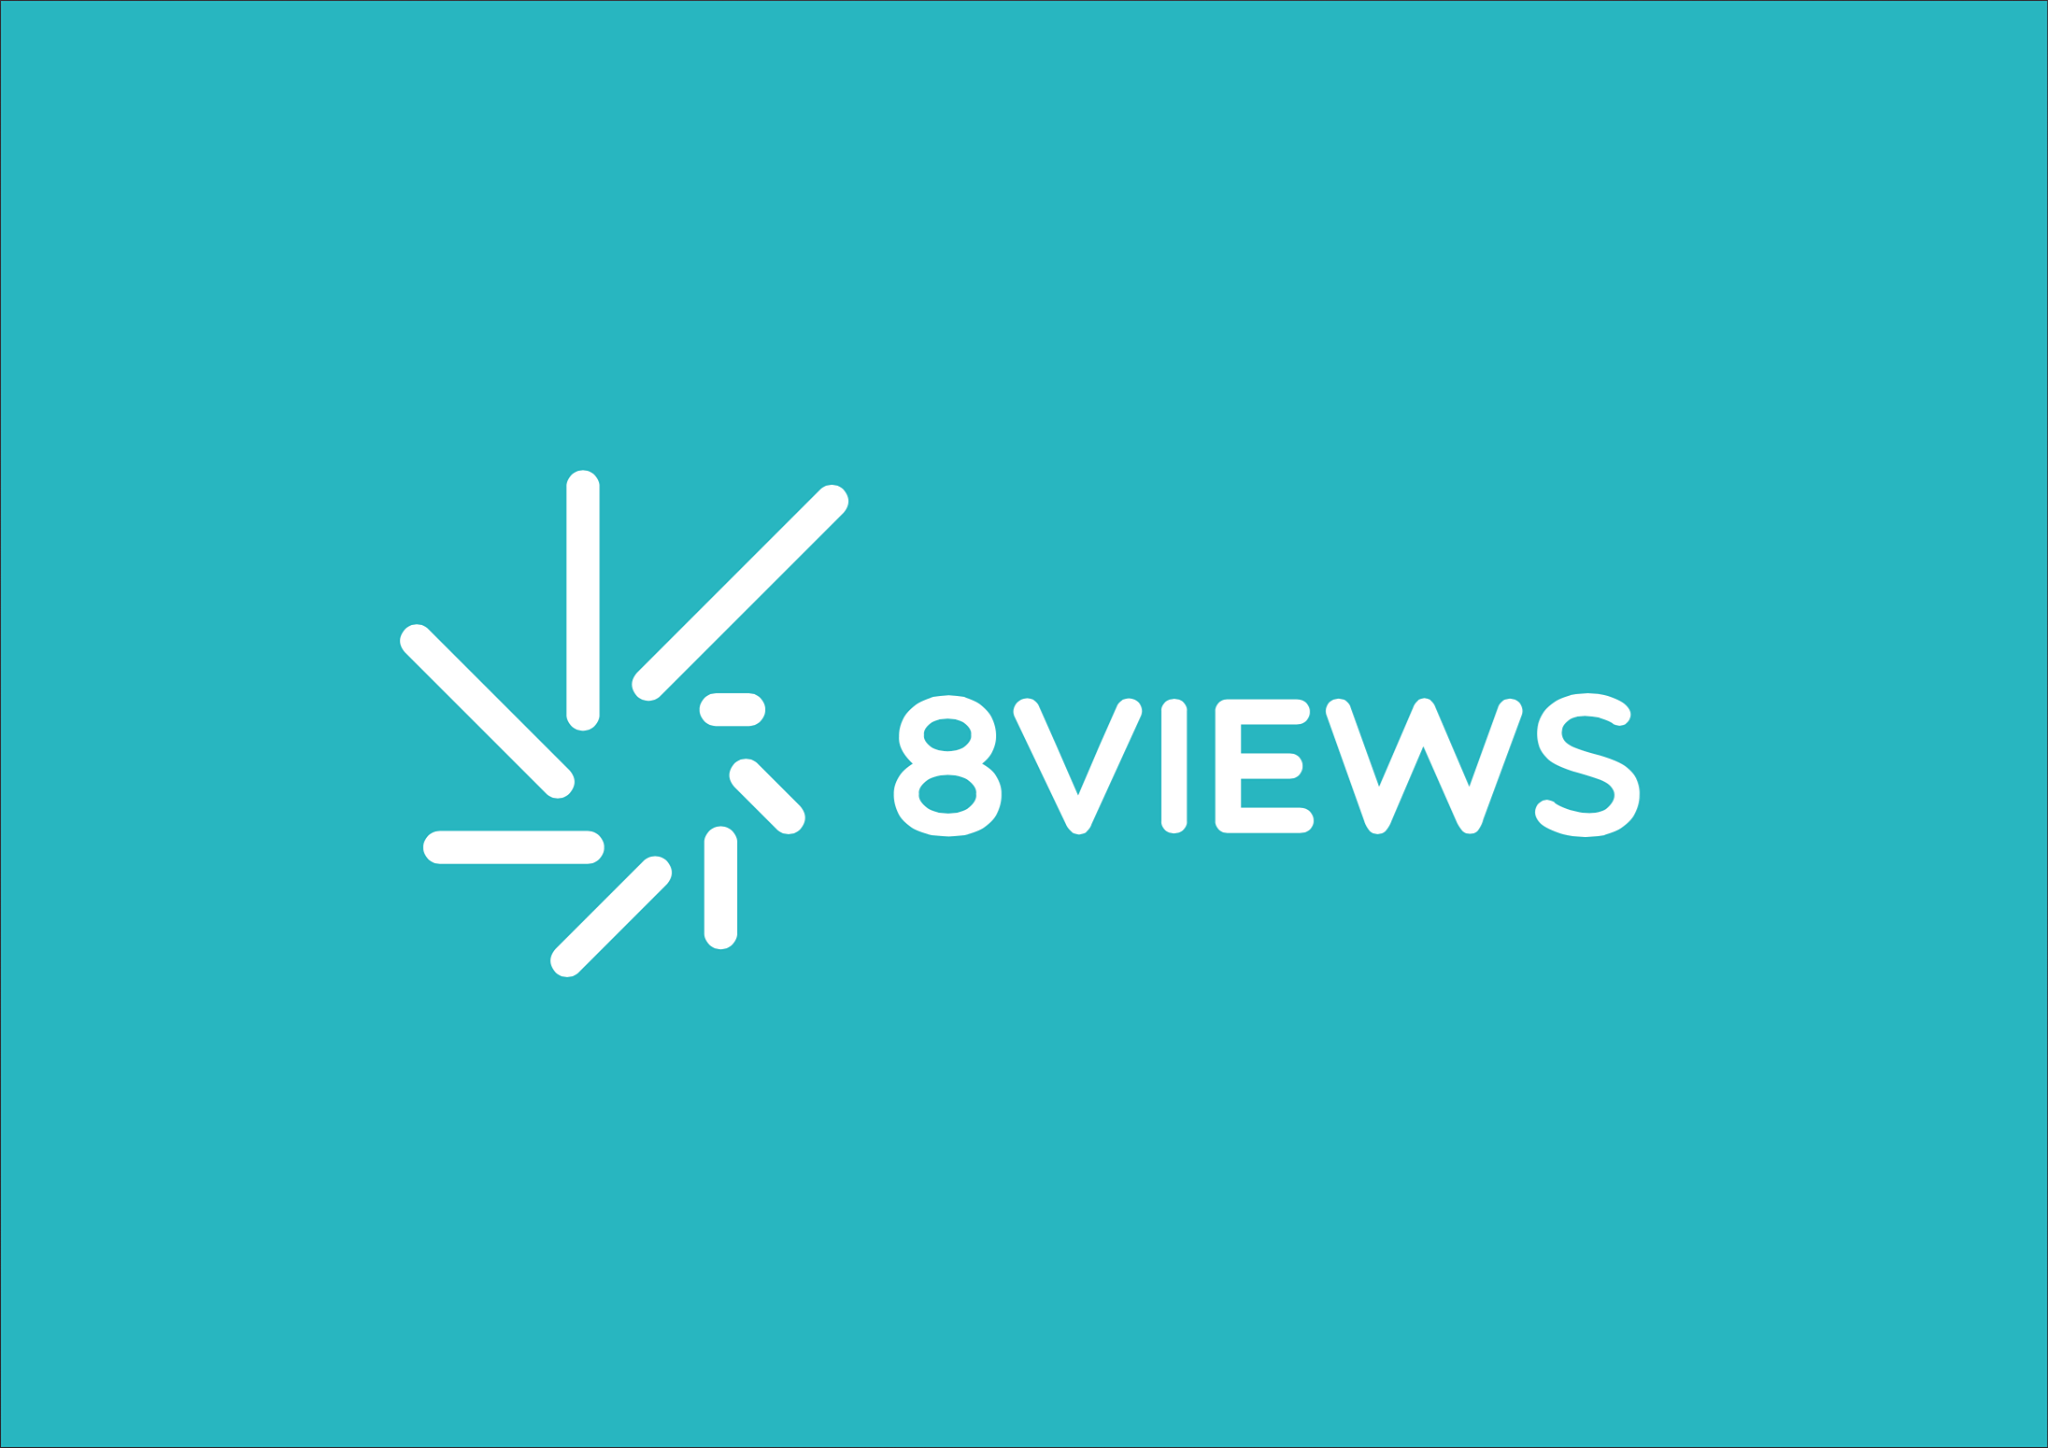 8views logo